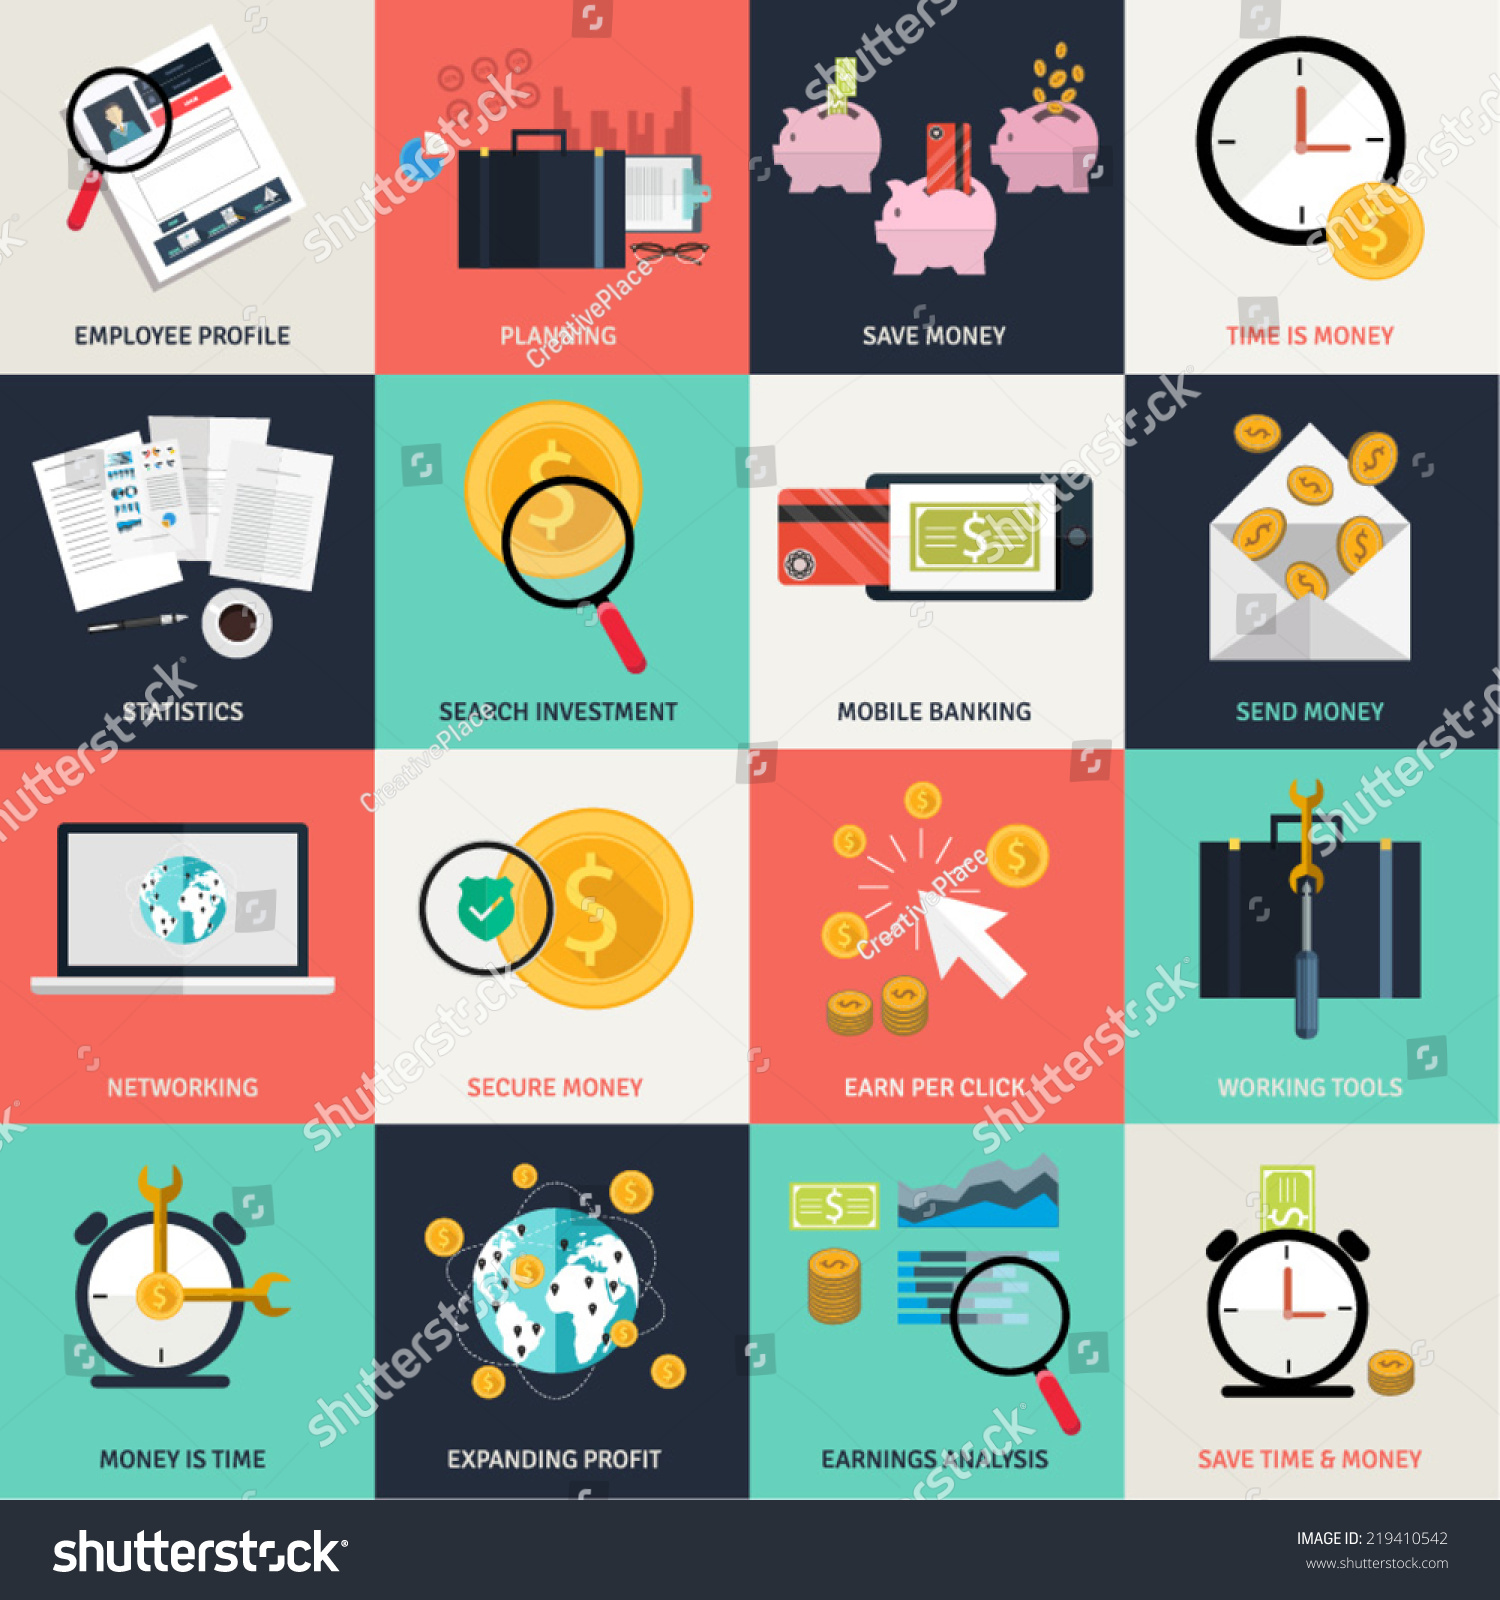 Flat design concept icons networking online stock vector 219410542 flat design concept icons for networking online education business e commerce payments buycottarizona Choice Image